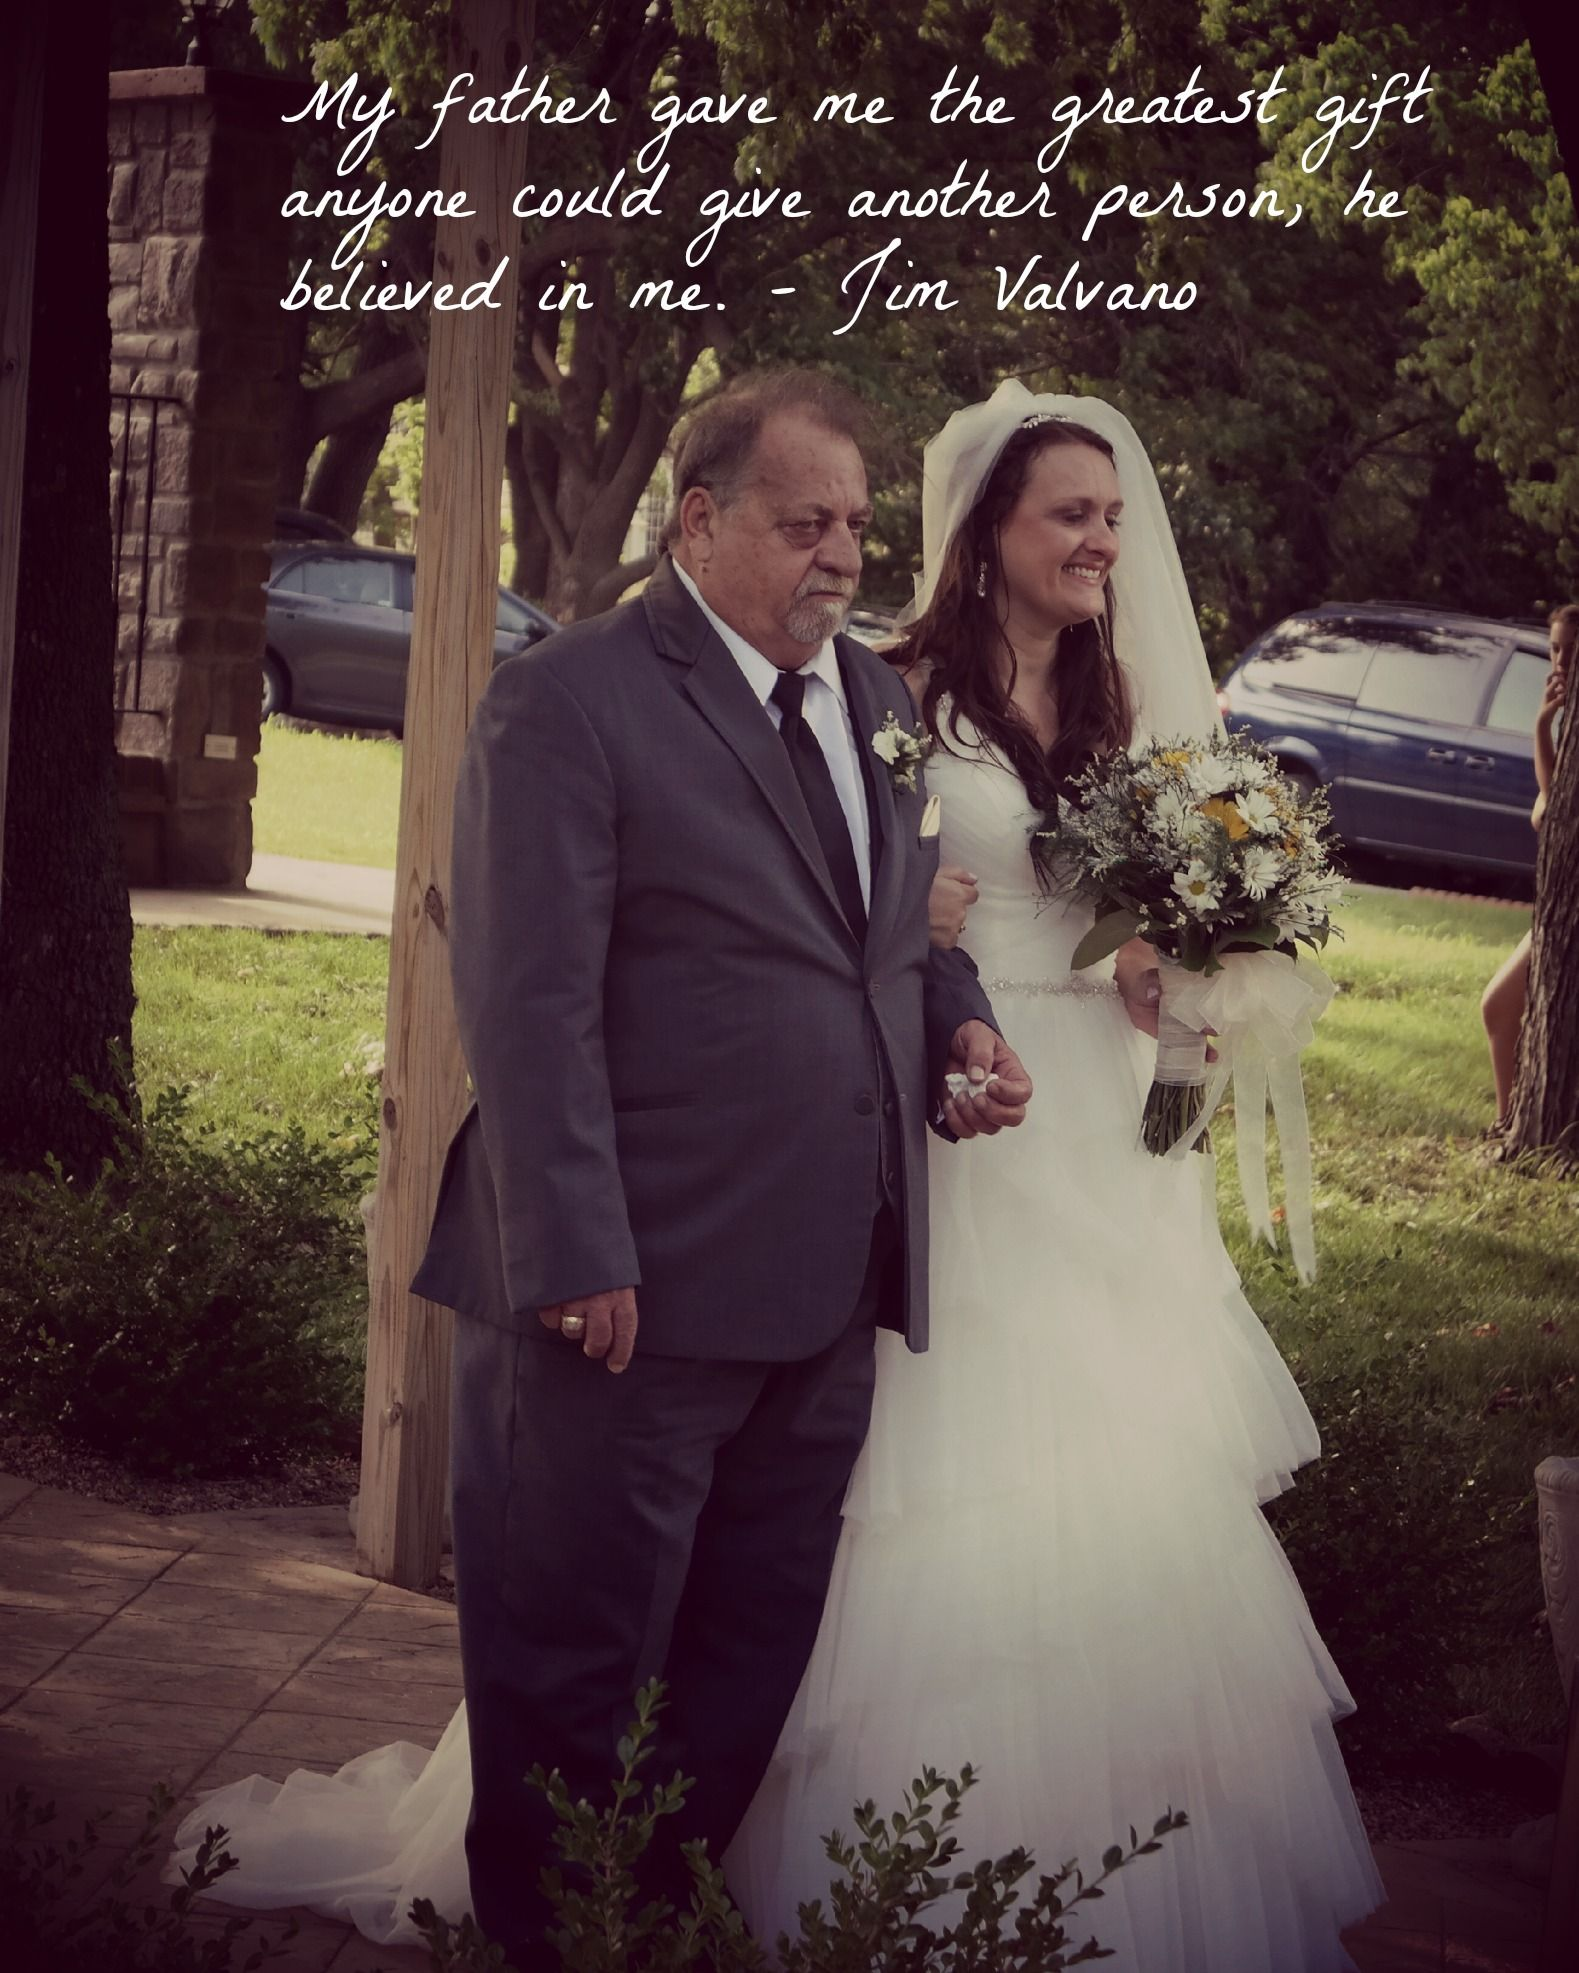 Father & Daughter Quote For Wedding Photo